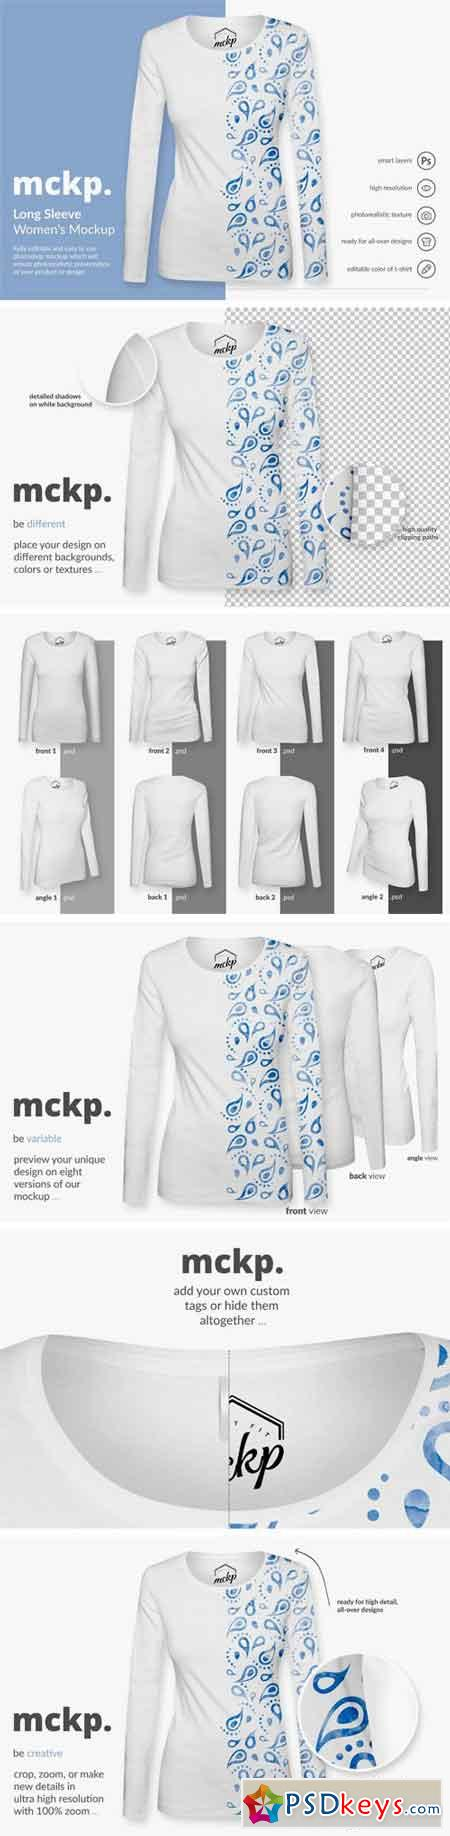 Long Sleeve by mckp - Women's Mockup 1667125